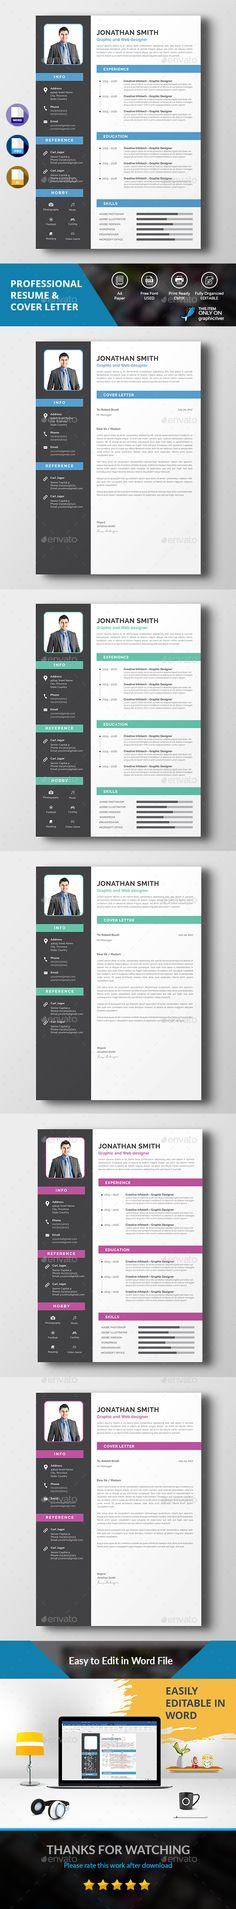 Word Resume Template, Resume ideas and Personal branding - psd resume templates